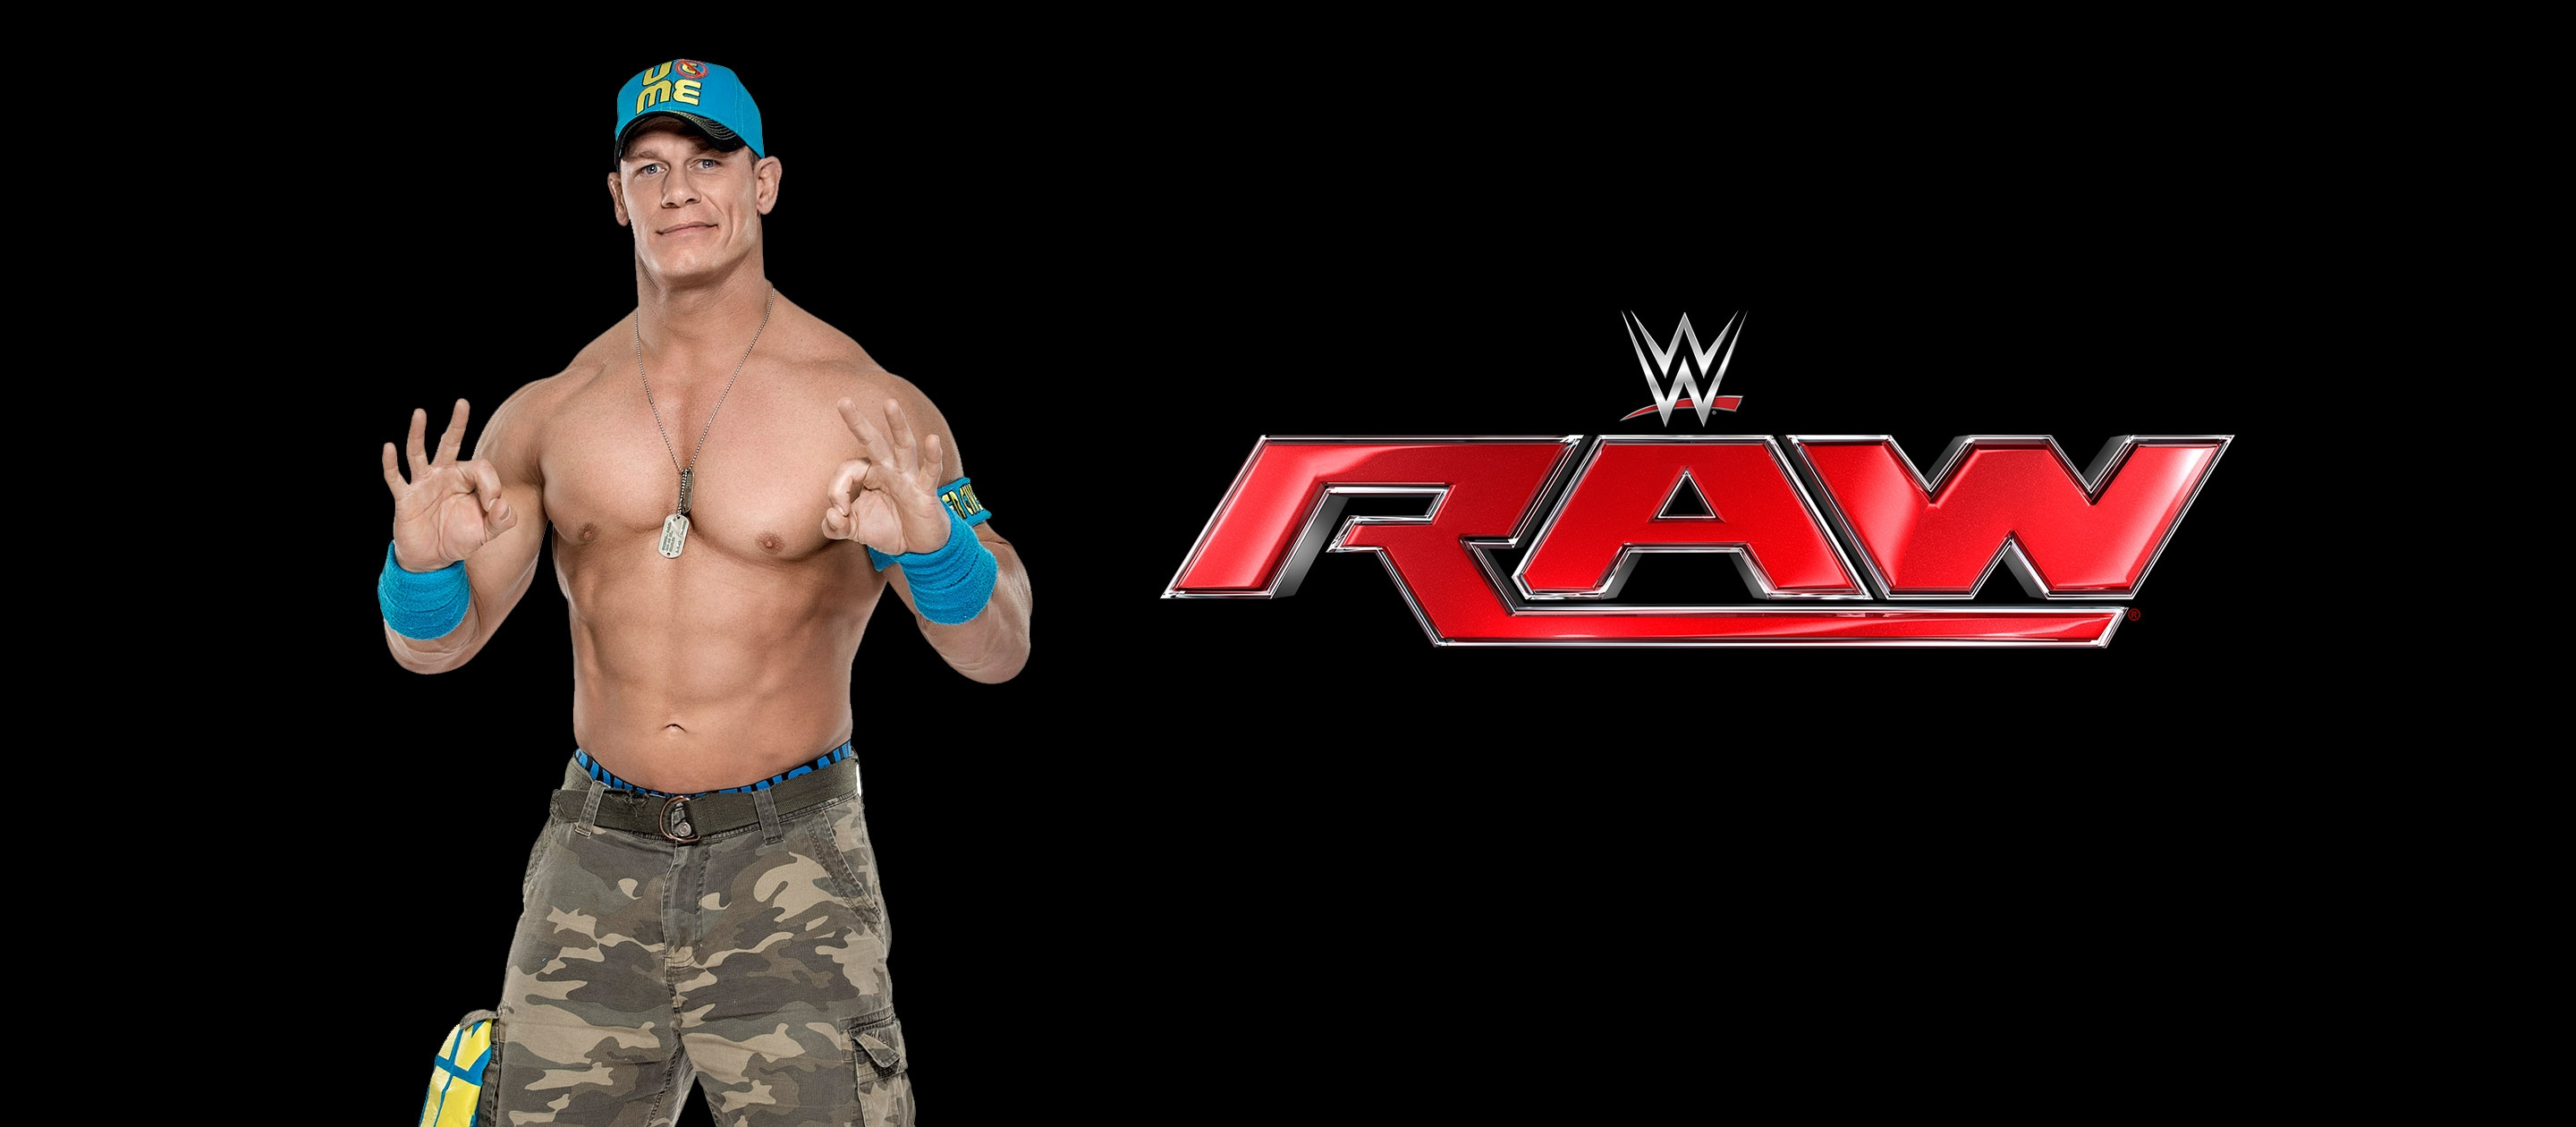 wwe wallpaper 1280x1024 jhone chena - photo #41